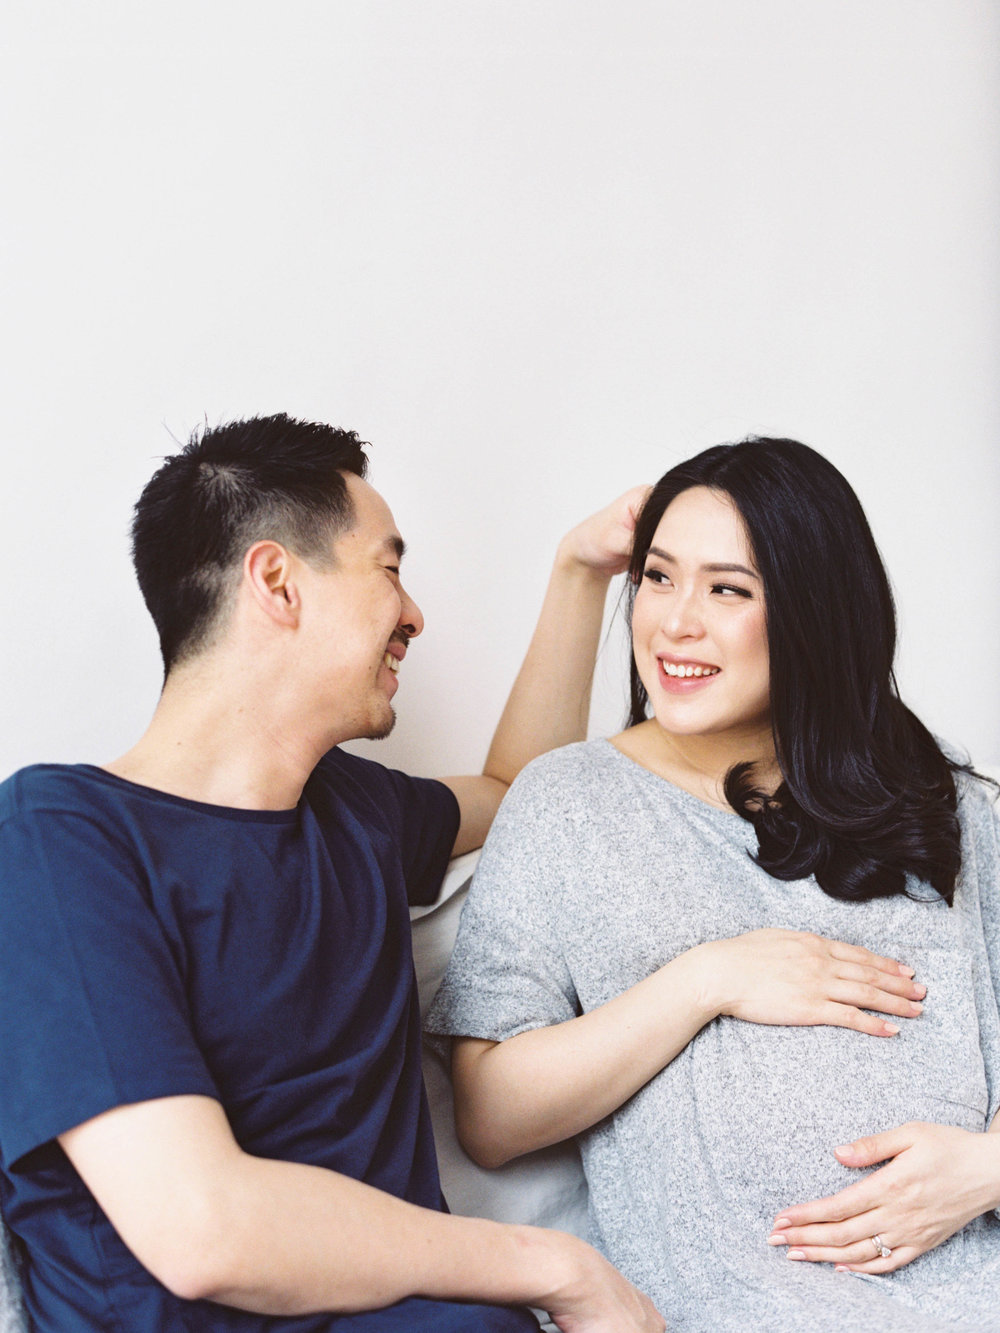 Gaby and Tim-Relaxed-Airy-Simple-Maternity Portrait Photoshoot-At Home-Jakarta-Studio June-Film Photography & Styling-9.jpg